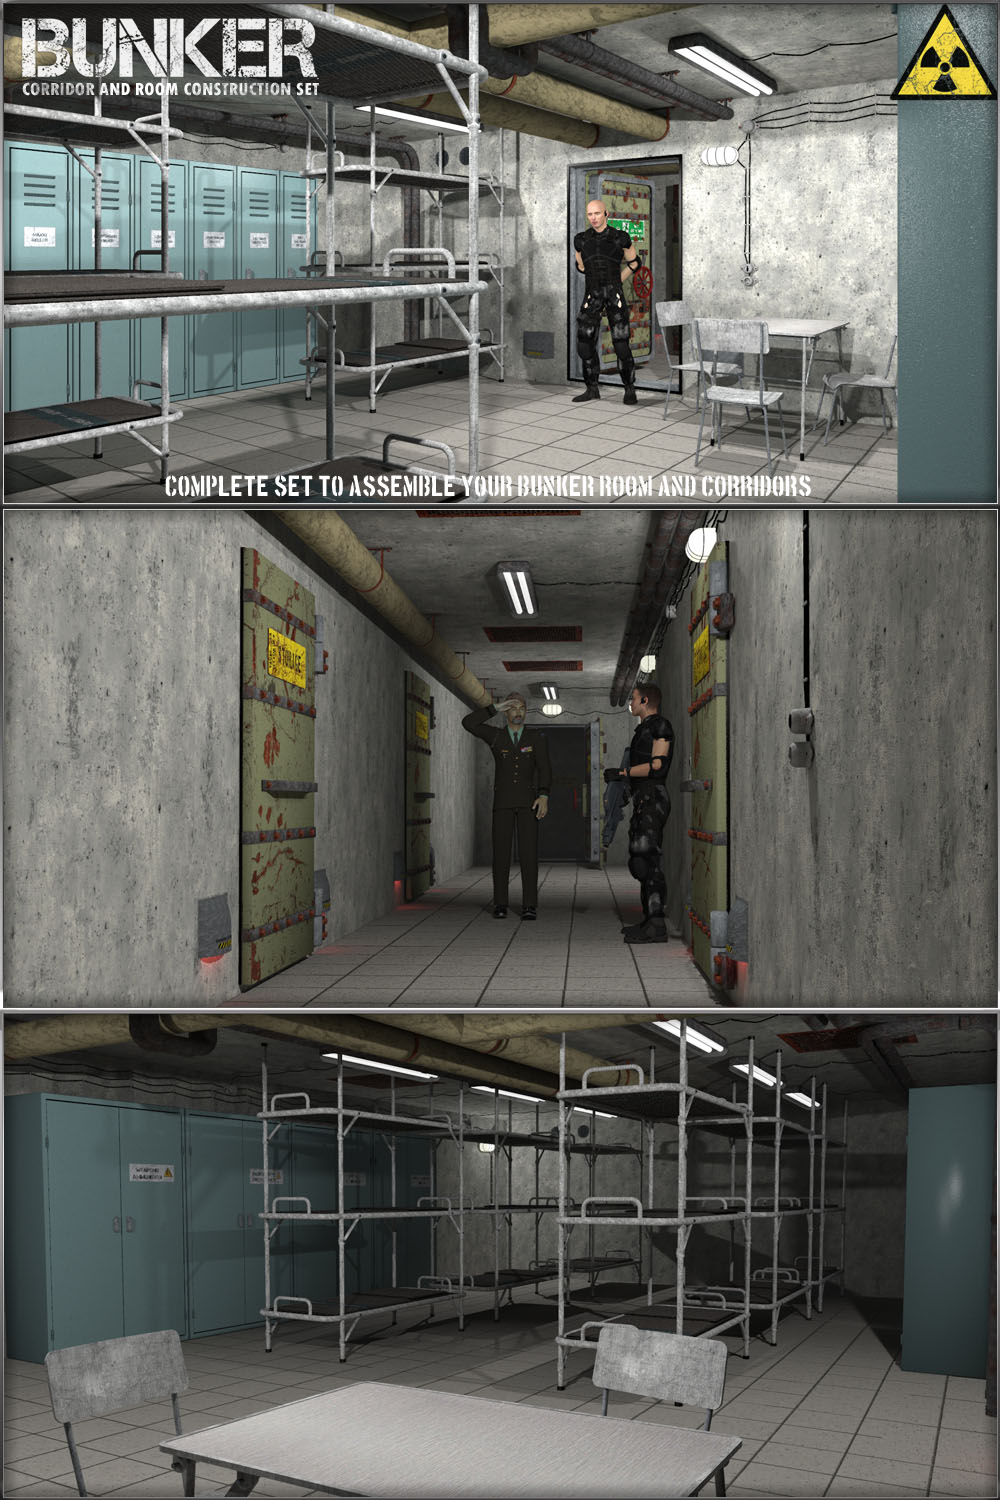 Bunker: S2 - Corridor and Room Construction Set by 3-d-c